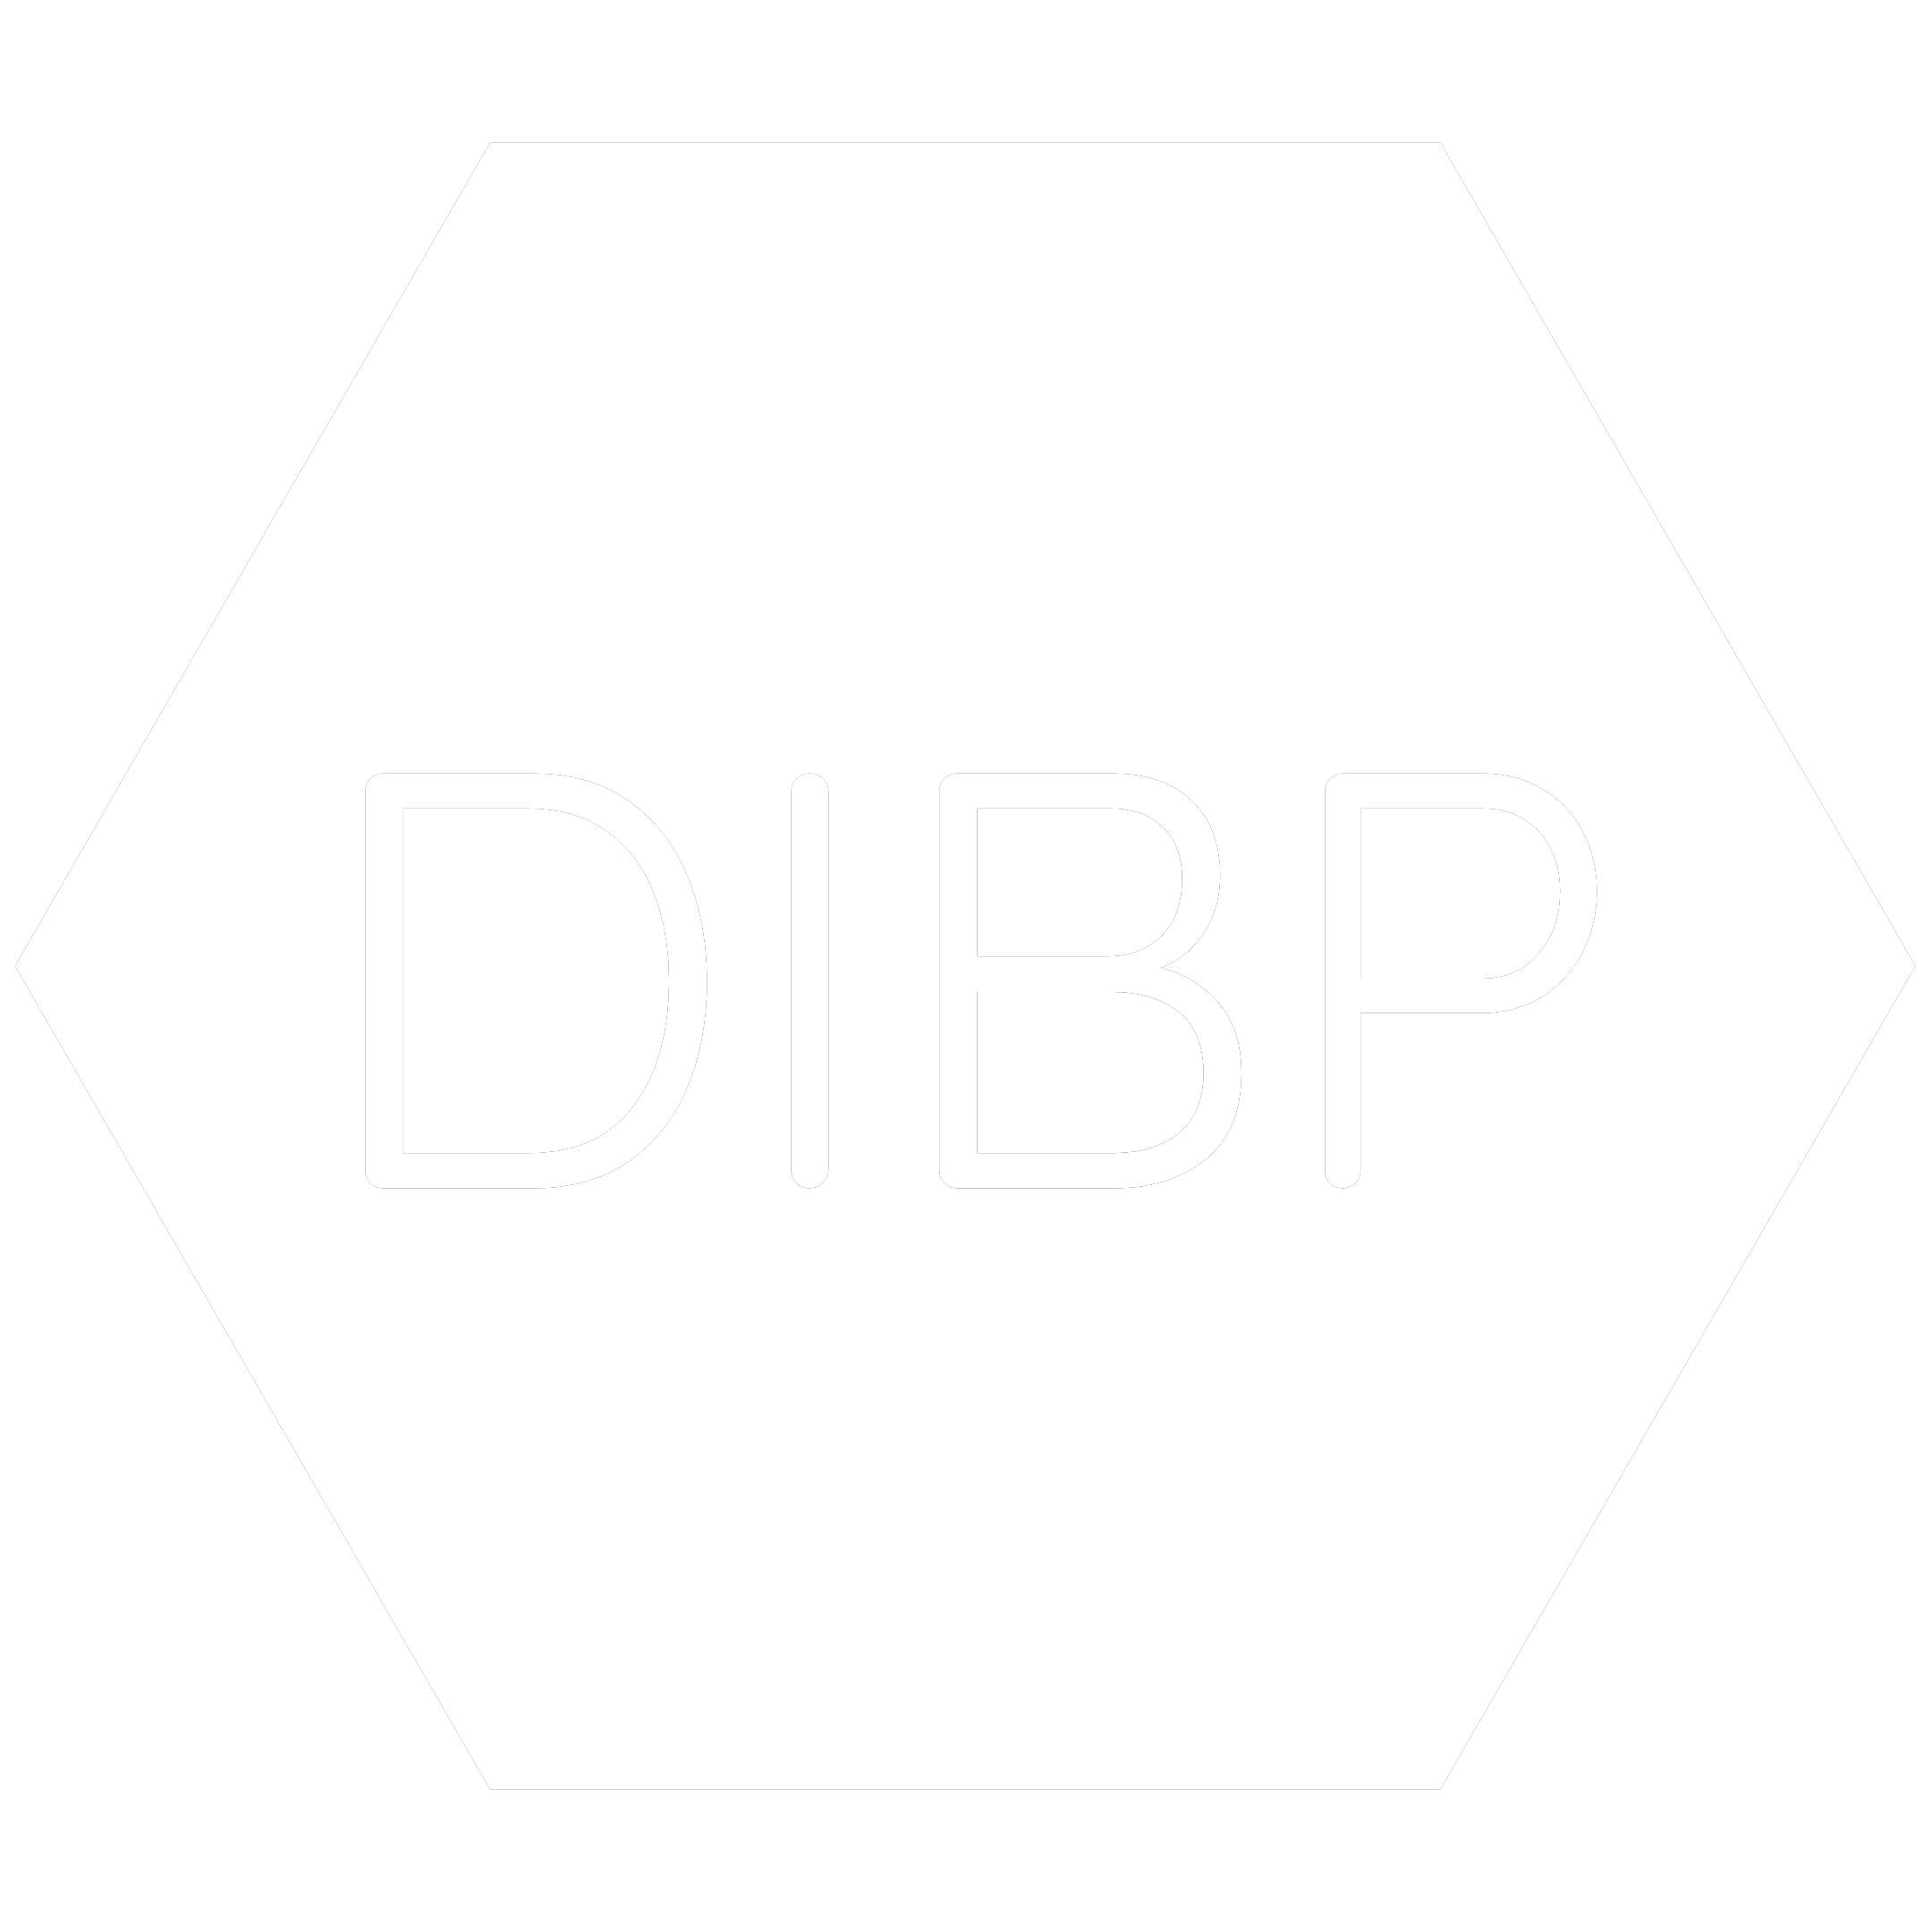 White hexagon icon with the chemical symbol for Diisobutyl Phthalate which is a banned RoHS substance.